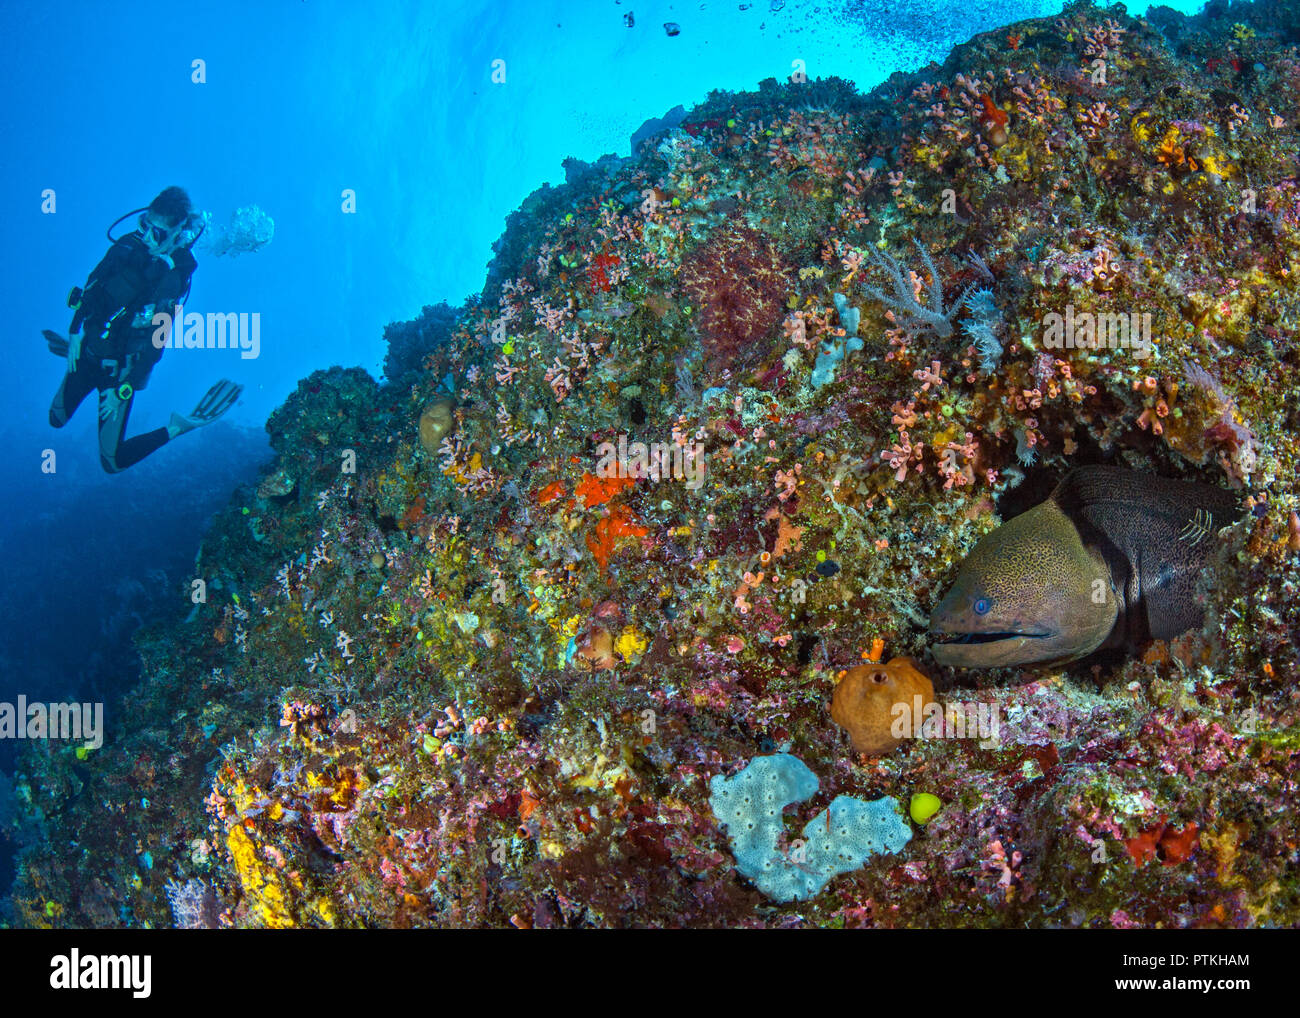 Green moray eel (Gymnothorax funebris) in coral reef with scuba diver in blue water background. Spratly Islands, South China Sea. - Stock Image